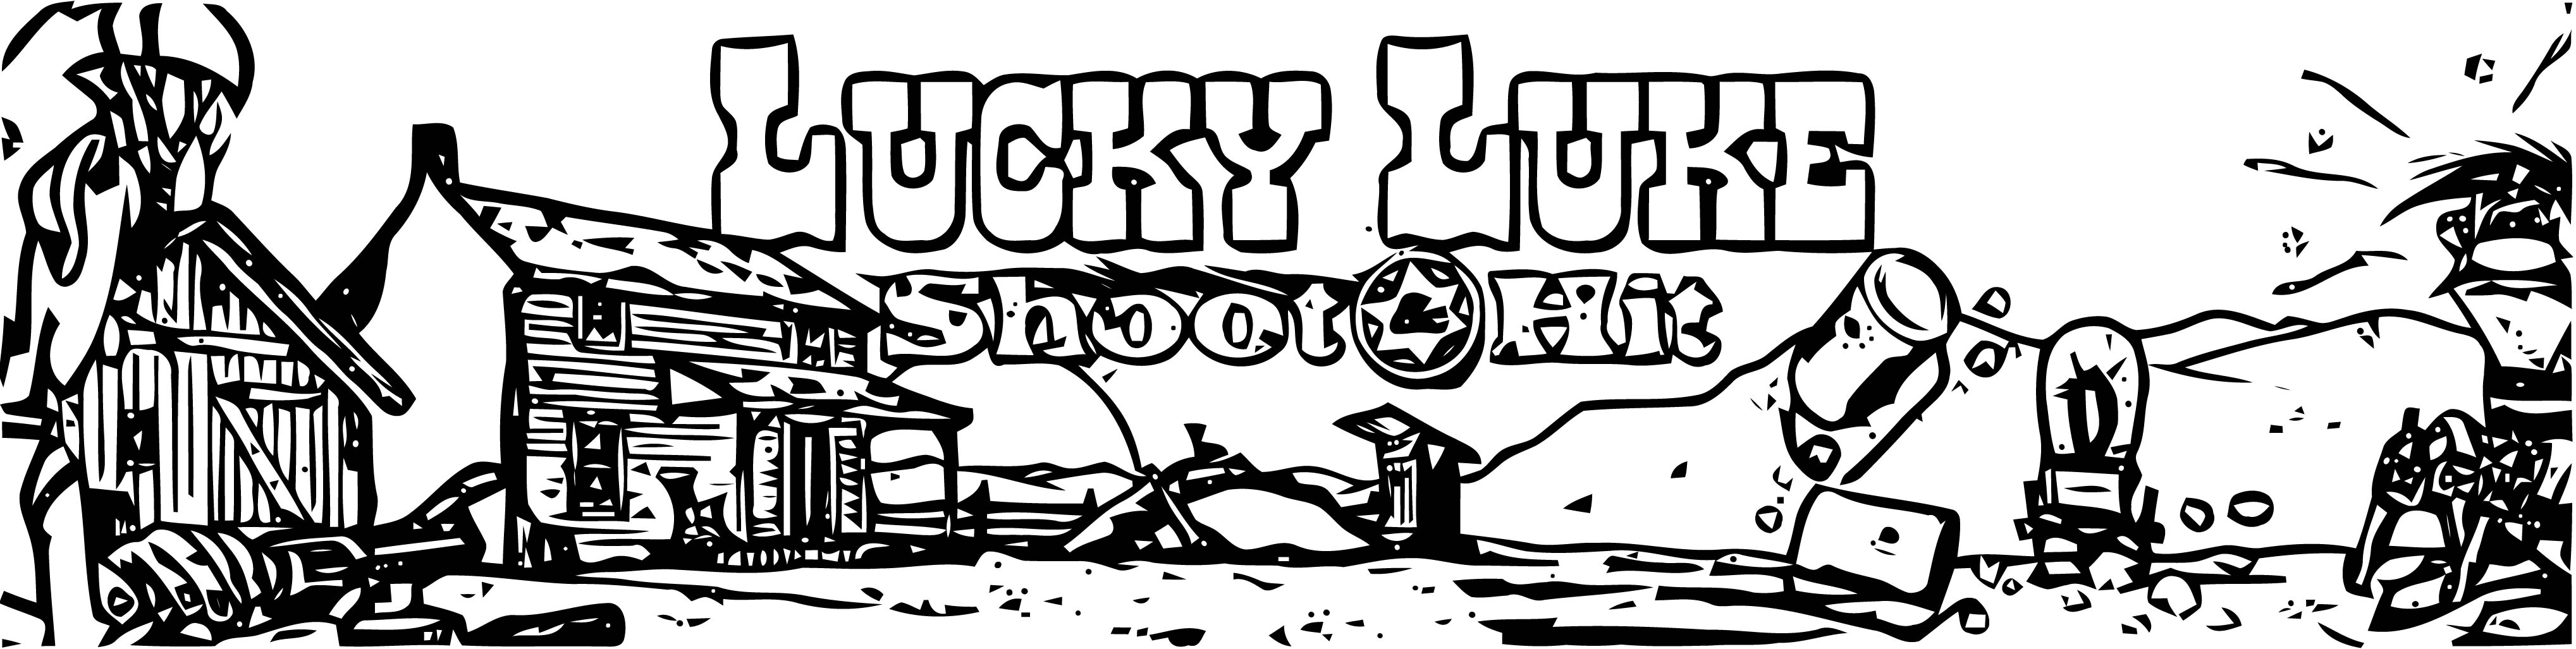 Lucky Luke Shoot Hit Coloring Page